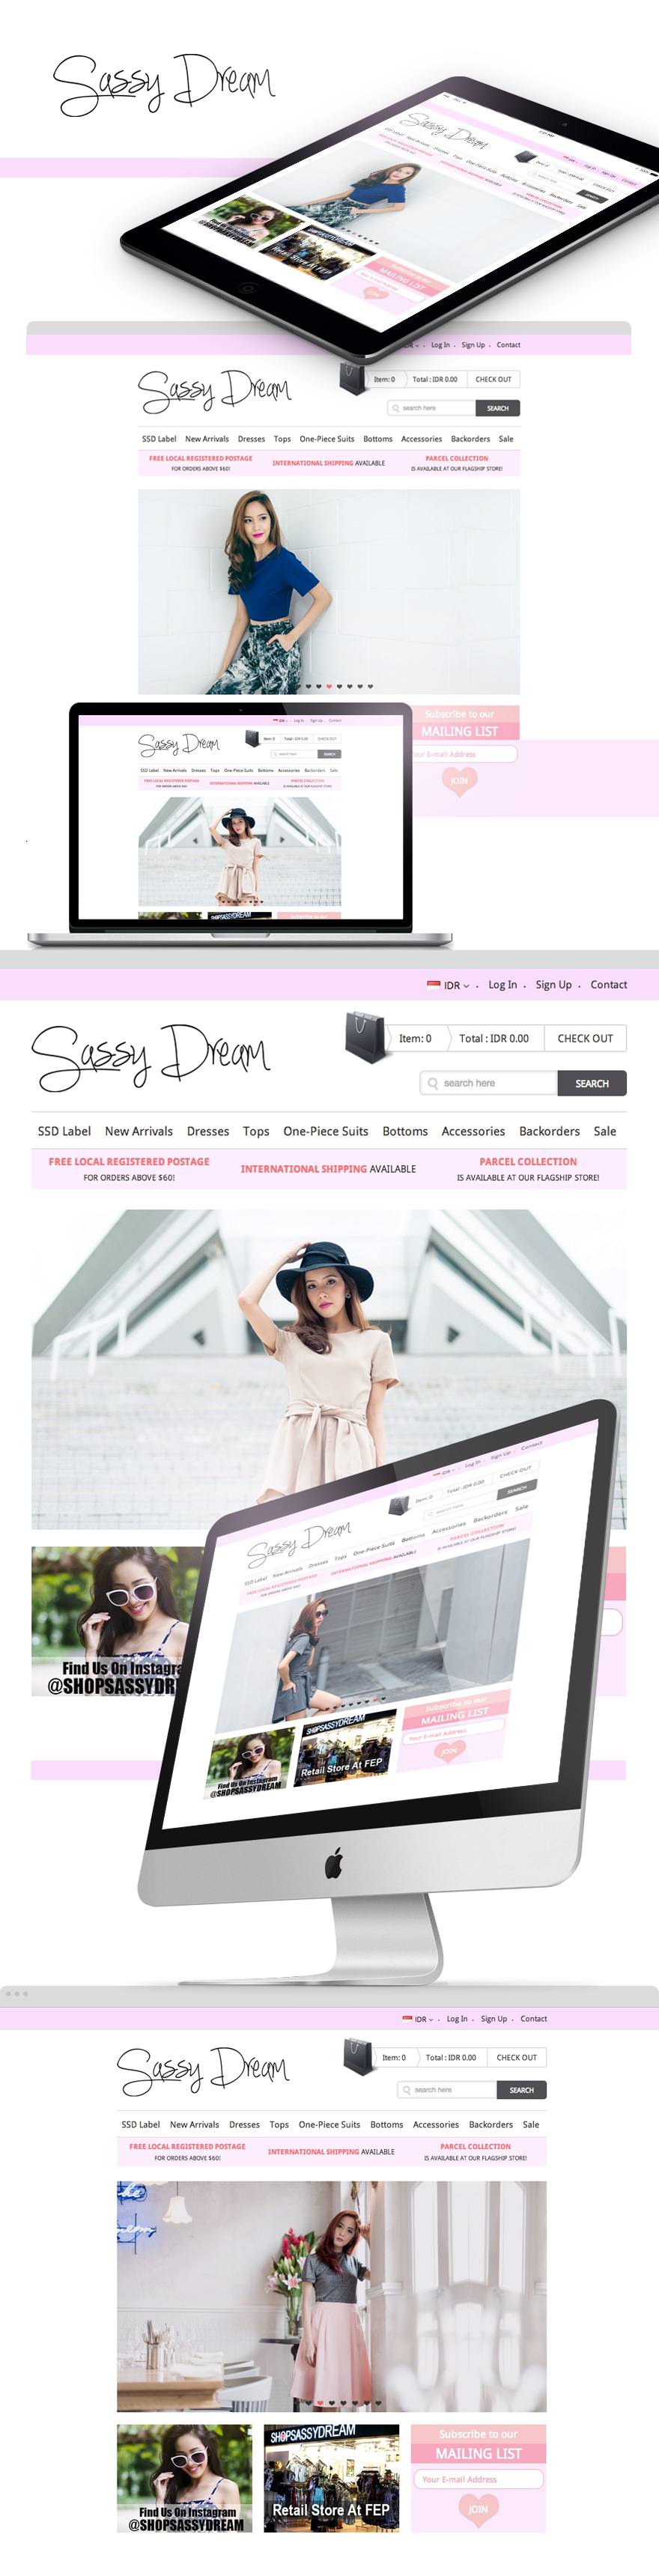 Projects - Shop Sassy Dream